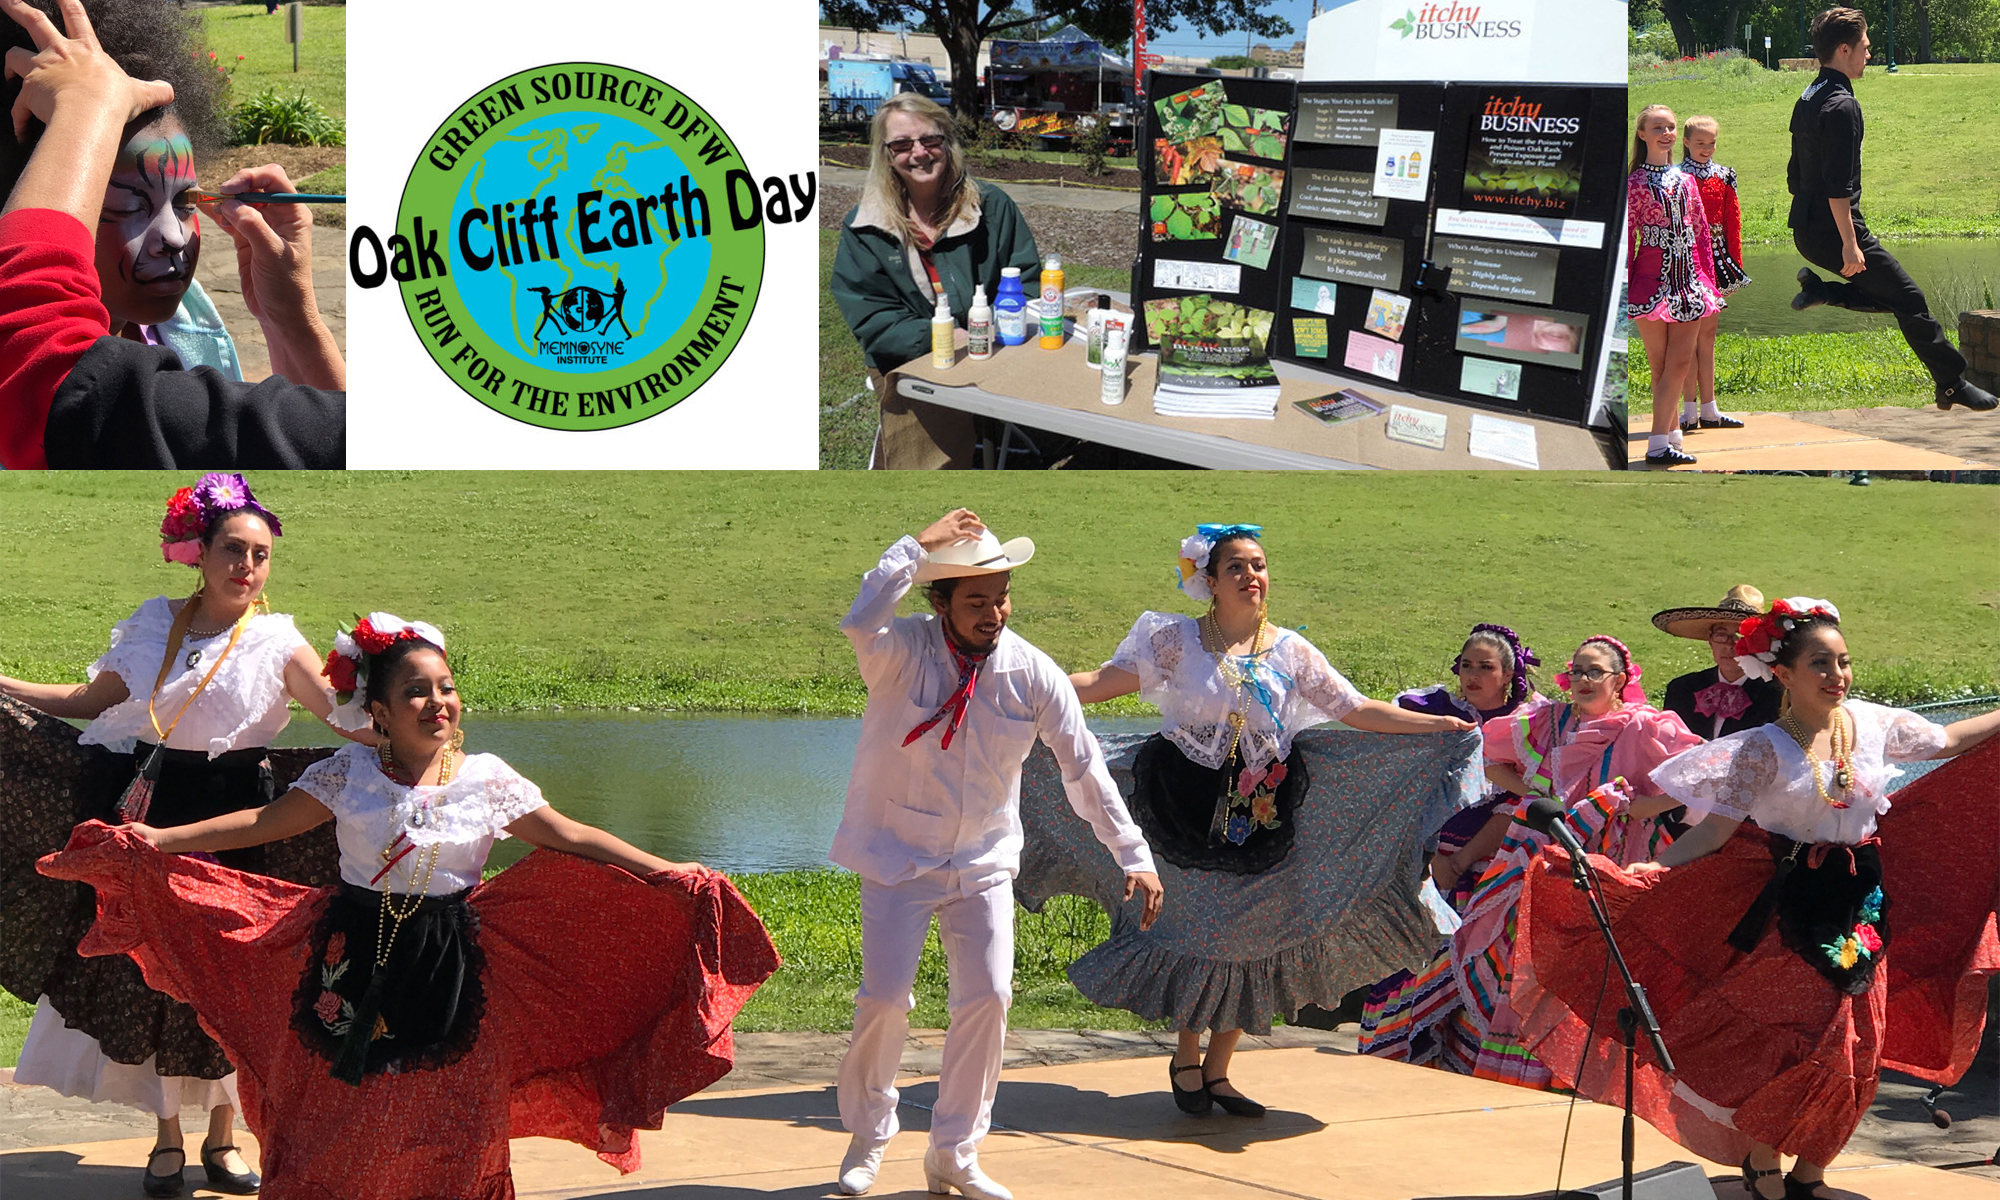 Oak Cliff Earth Day